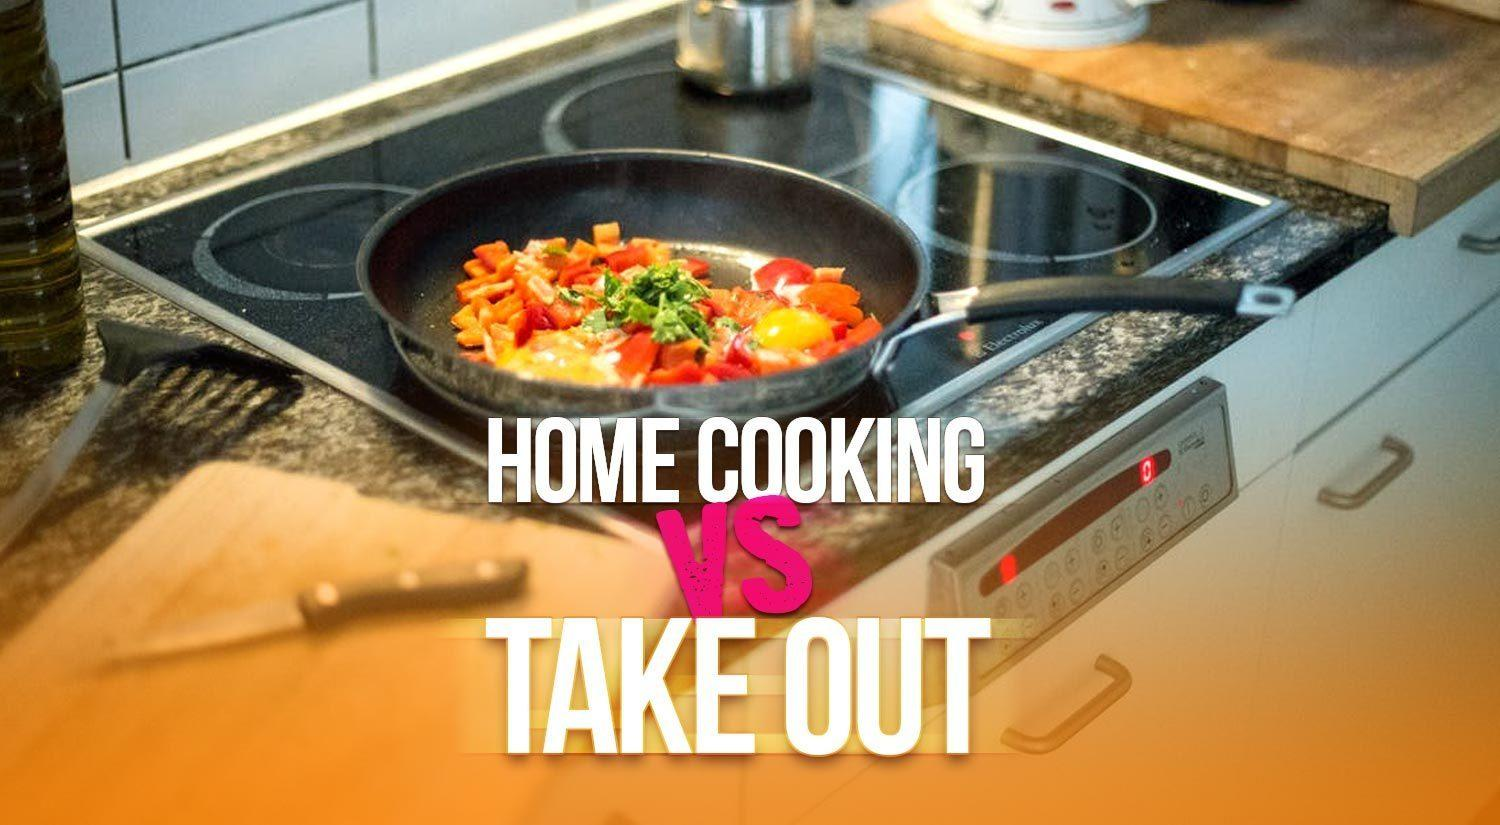 Home Cooking vs Take Out - The Battle of the Budget